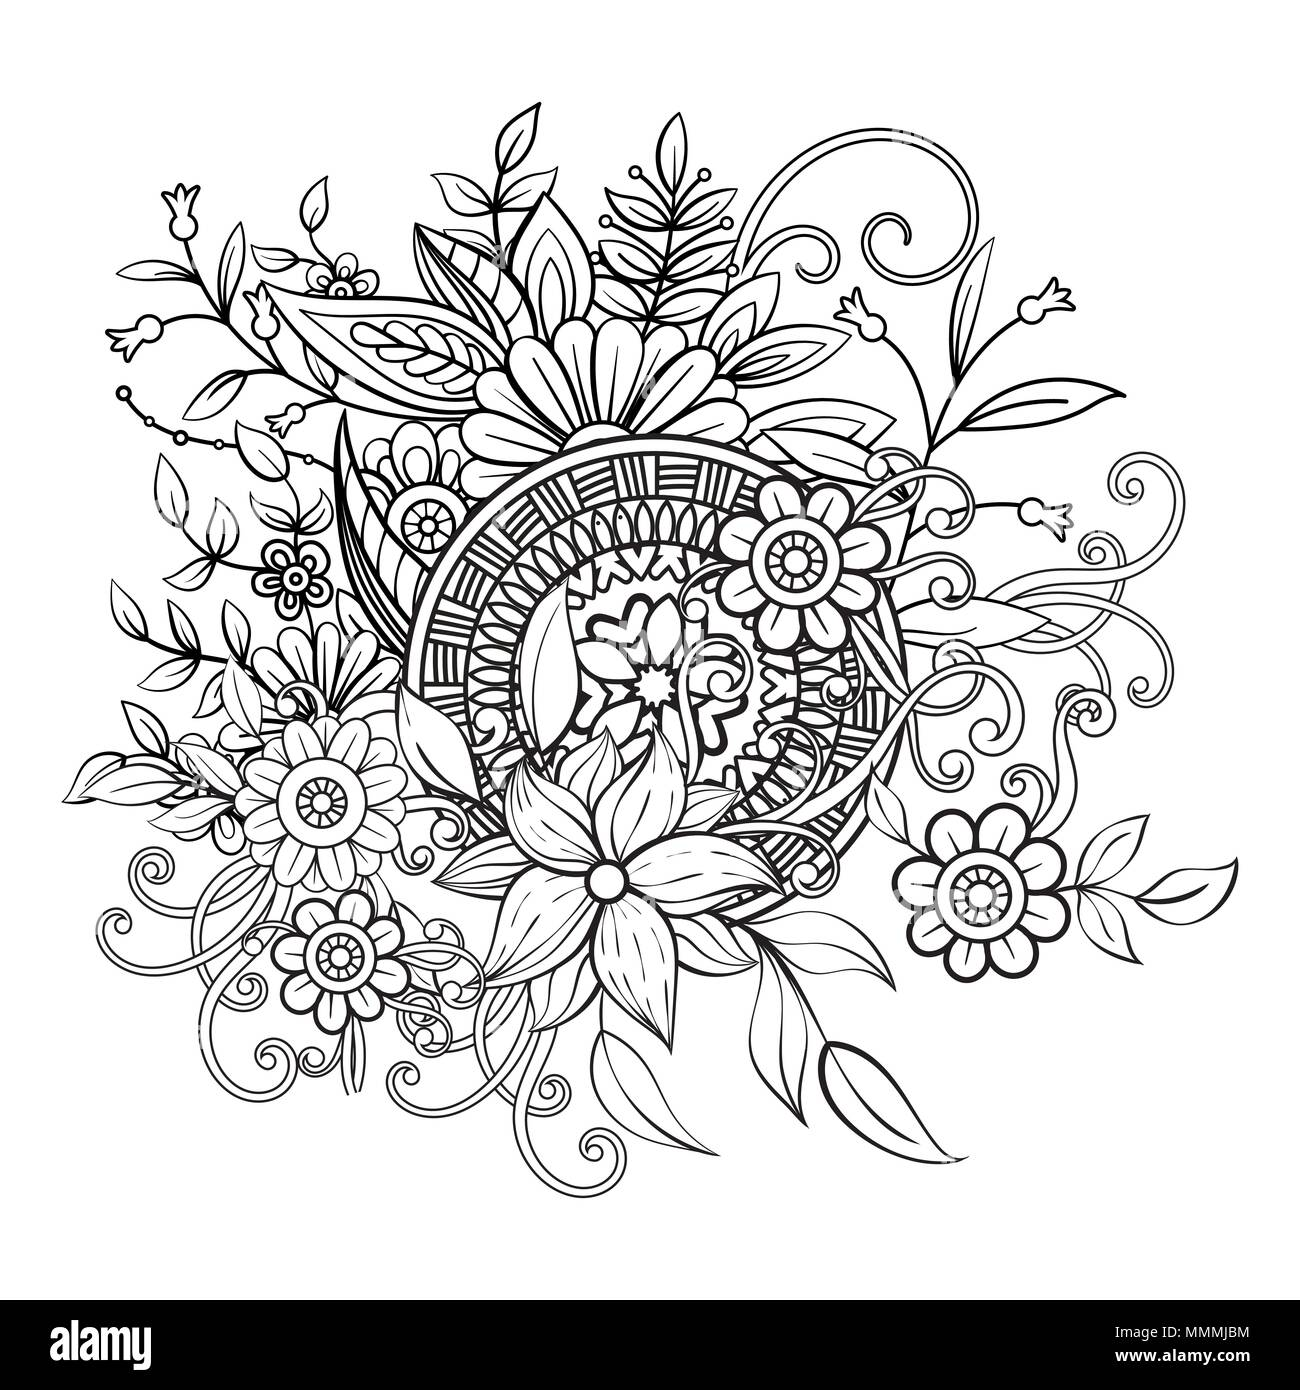 Floral pattern in black and white. Adult coloring book page with ...